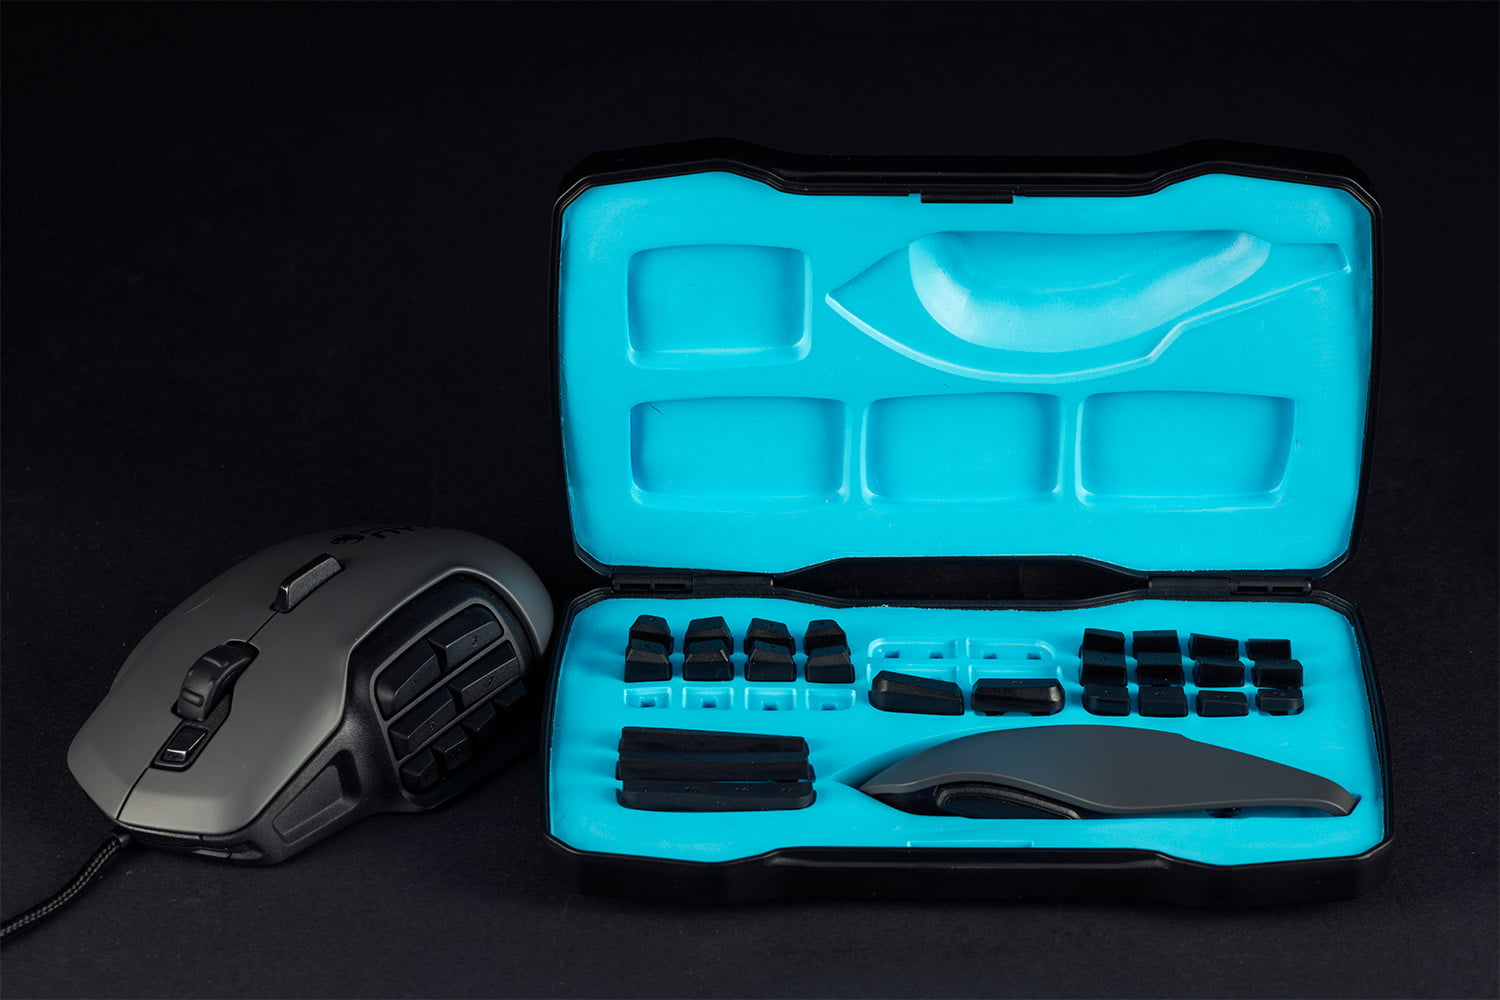 https://icdn5.digitaltrends.com/image/roccat-nyth-review-mouse-case-open-1500x1000.jpg?ver=1